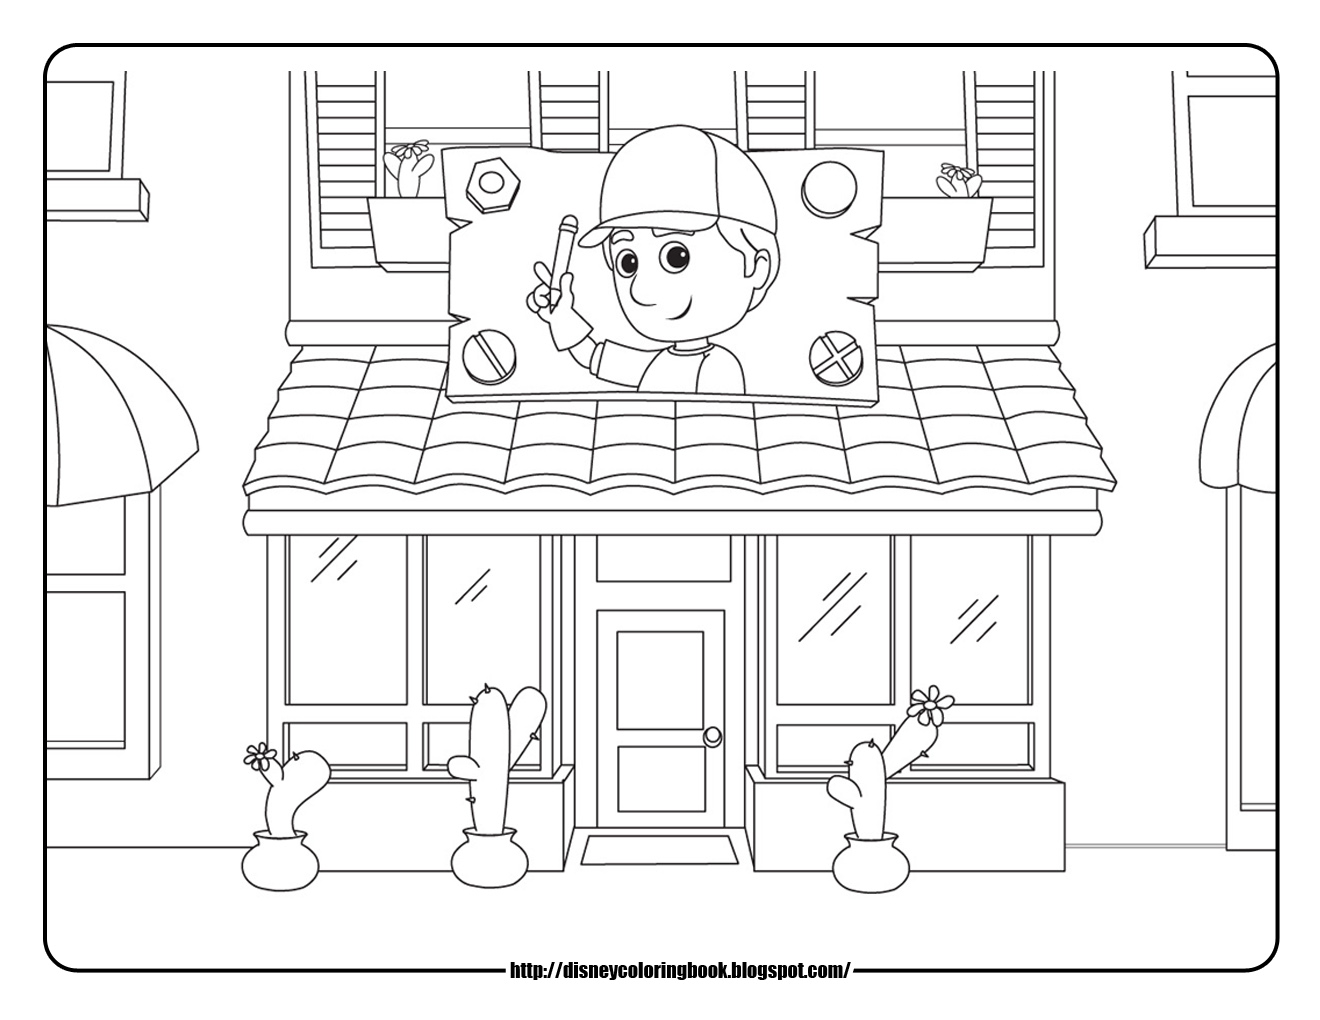 Handy Manny 2: Free Disney Coloring Sheets